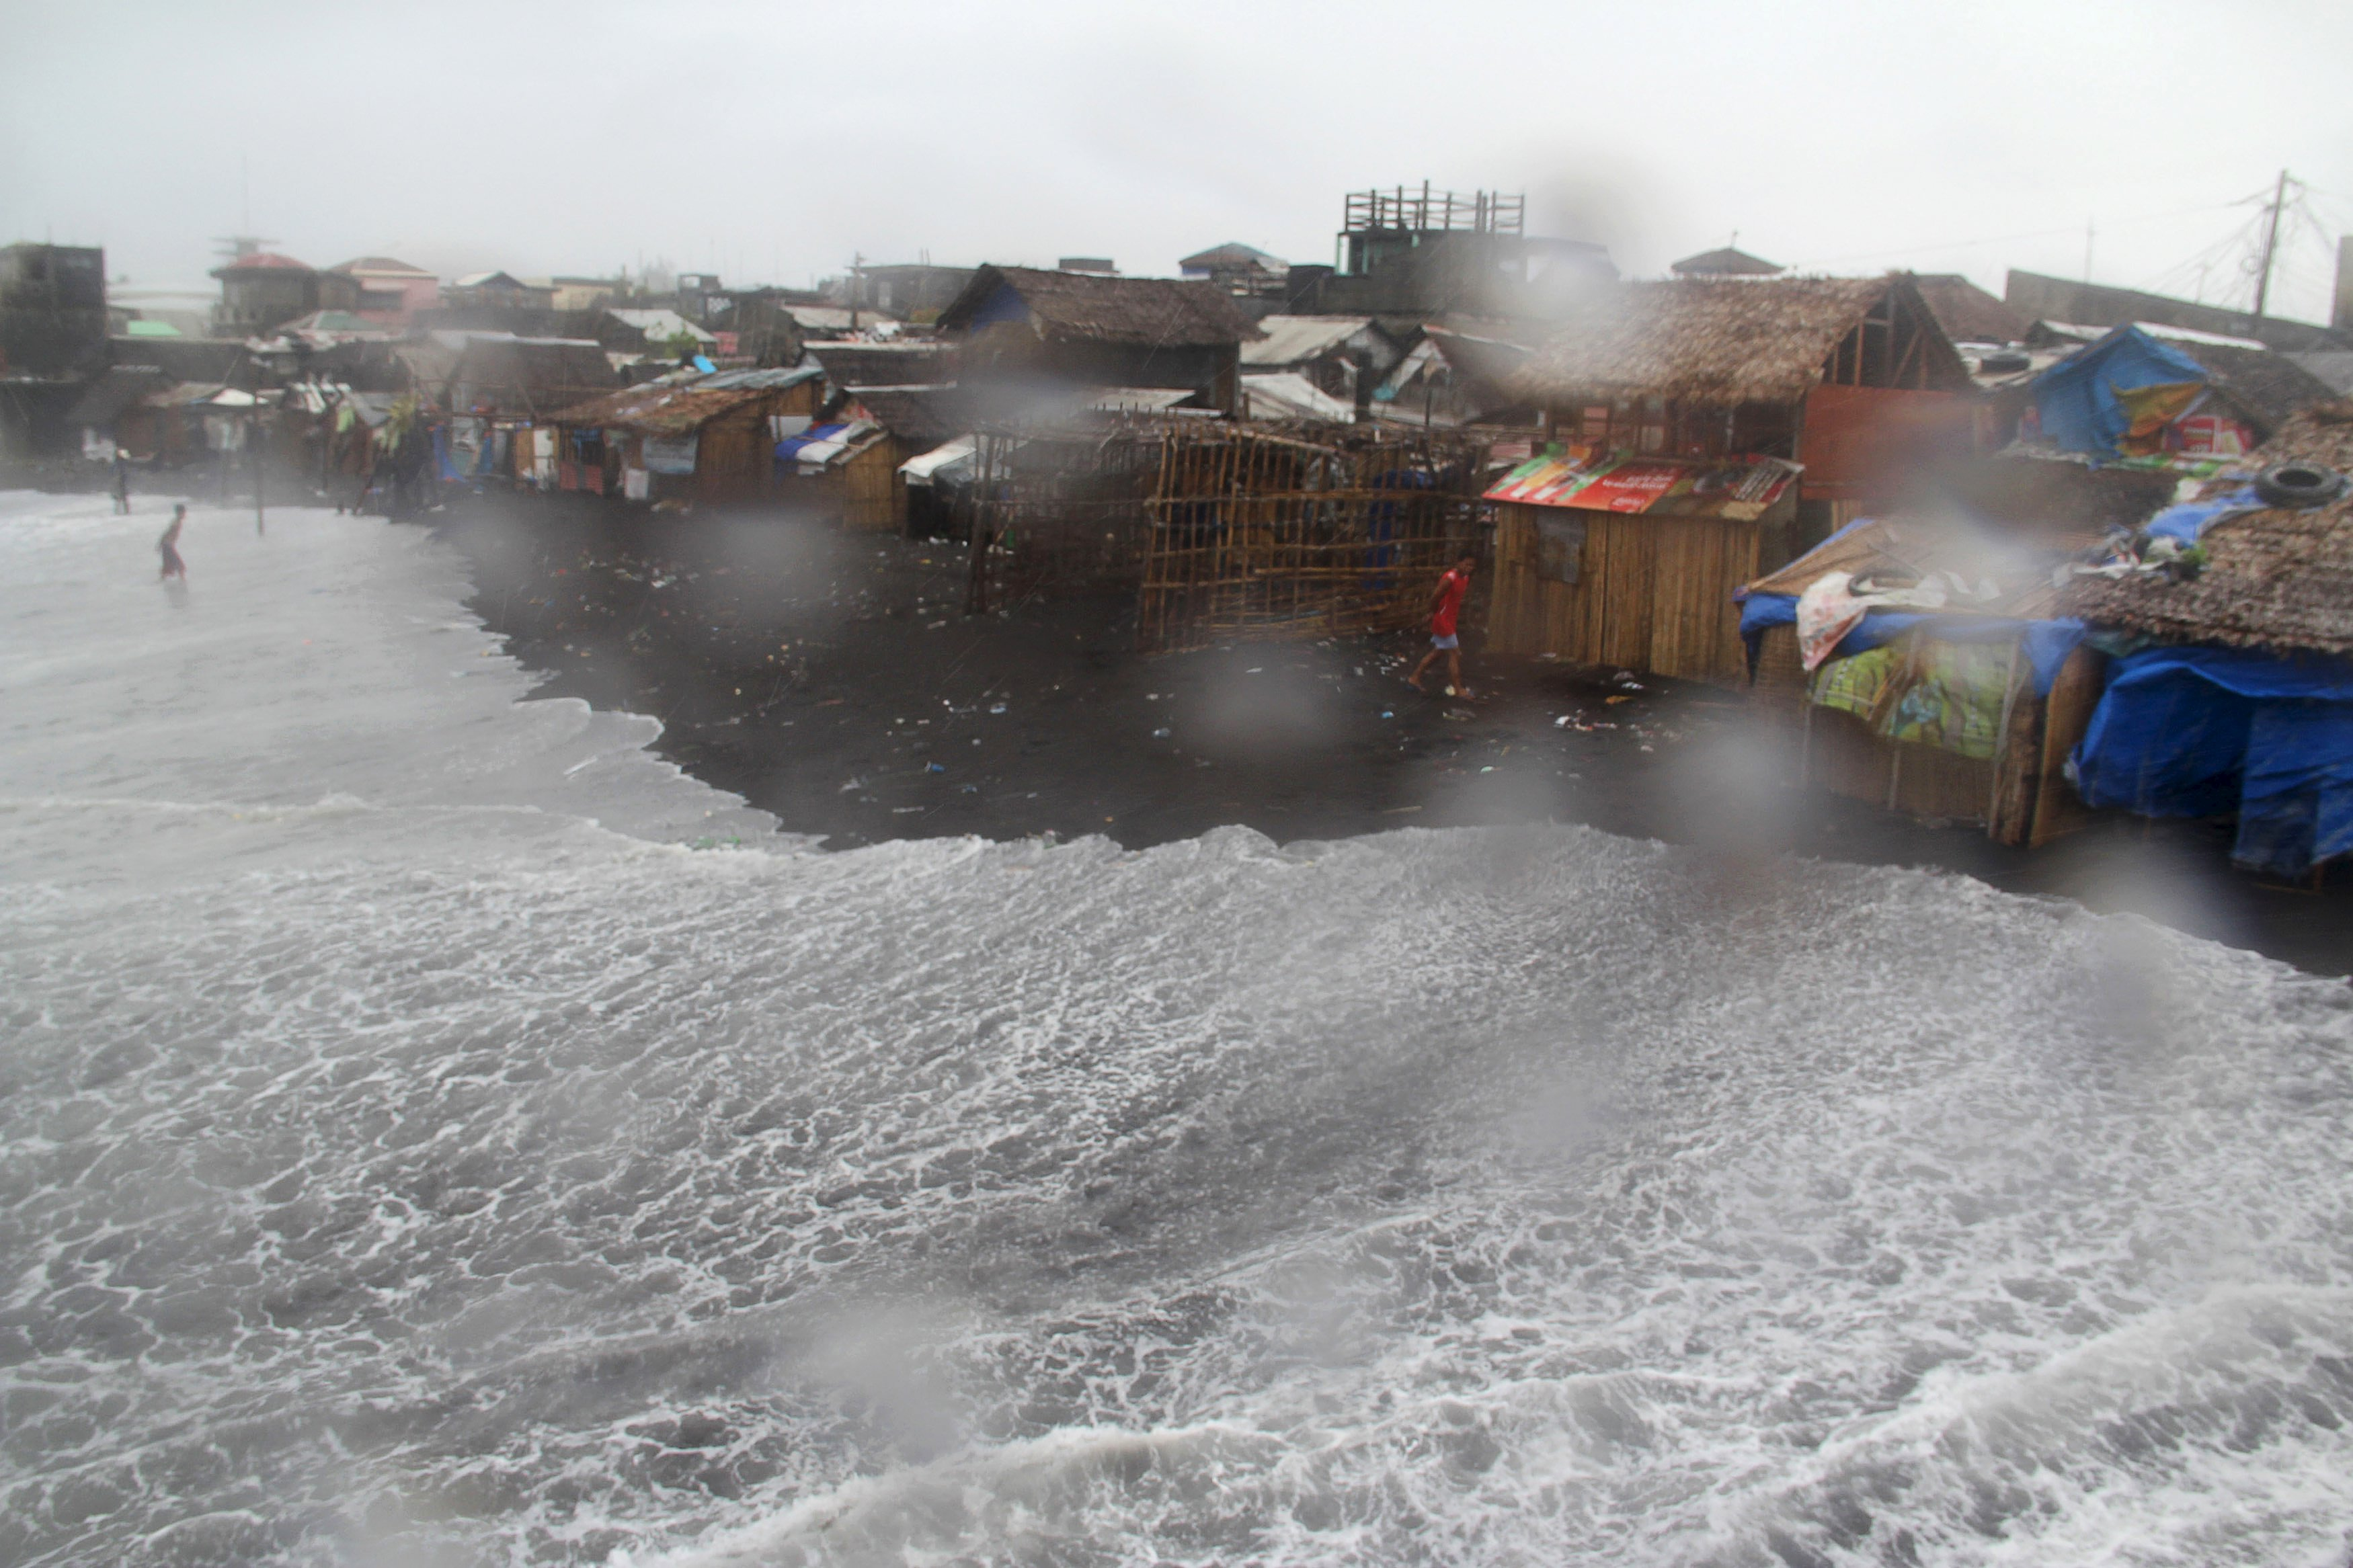 Residents are seen in a coastal area battered by strong winds and heavy rains brought by typhoon Melor in Legazpi city, central Philippines December 15, 2015. Wide areas of the central Philippines were plunged into darkness on Tuesday as powerful typhoon Melor barreled into the coconut-growing region, causing flooding, storm surges and forcing almost 800,000 people to evacuate their homes, officials said.      REUTERS/Rhadyz Barcia EDITORIAL USE ONLY. NO RESALES. NO ARCHIVES.